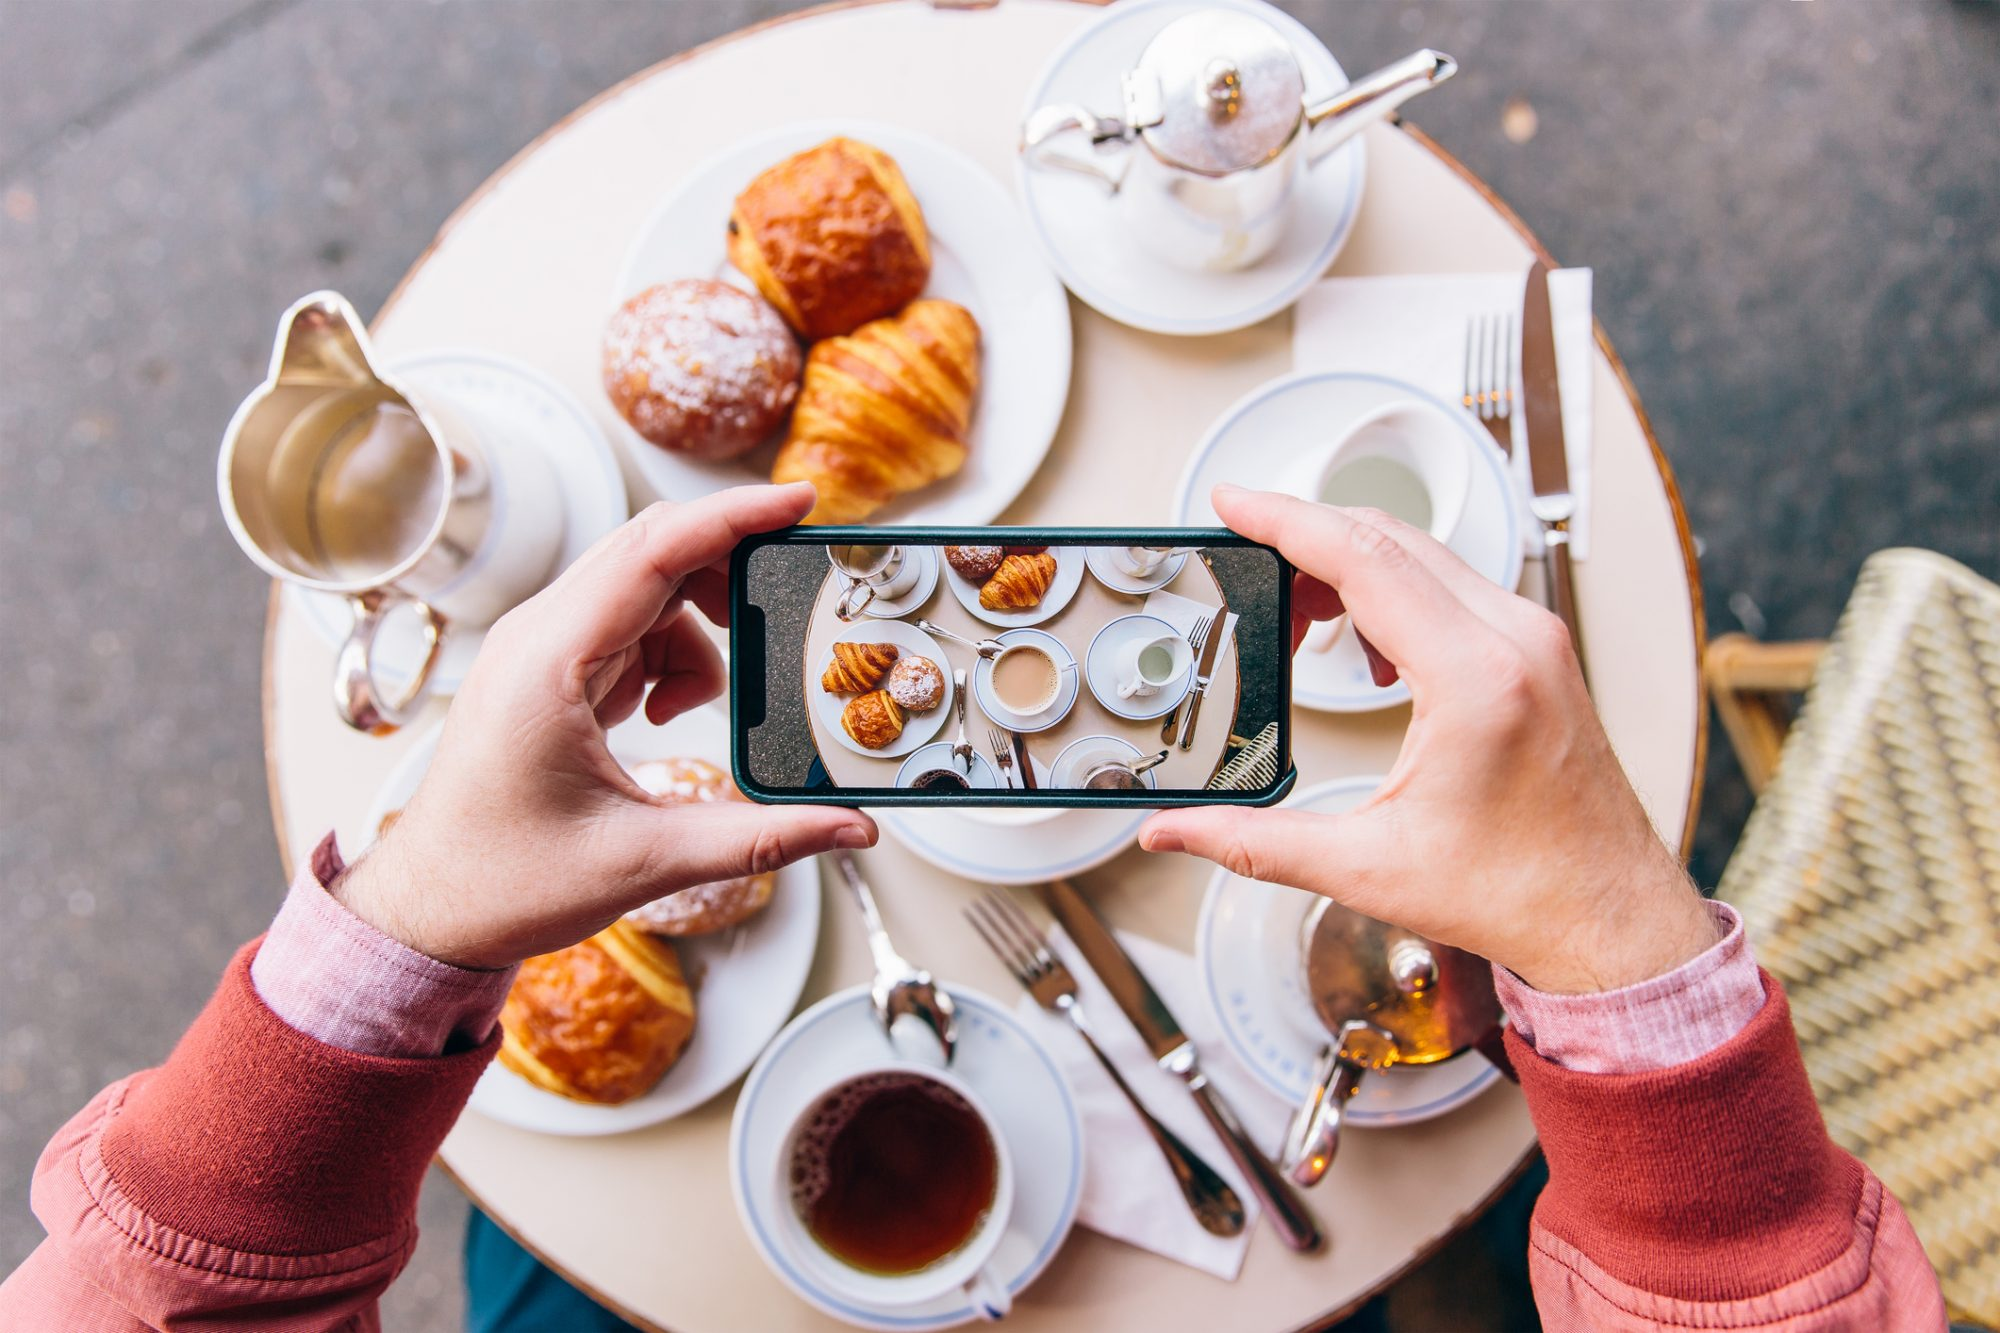 How to Take Food Photos for Instagram